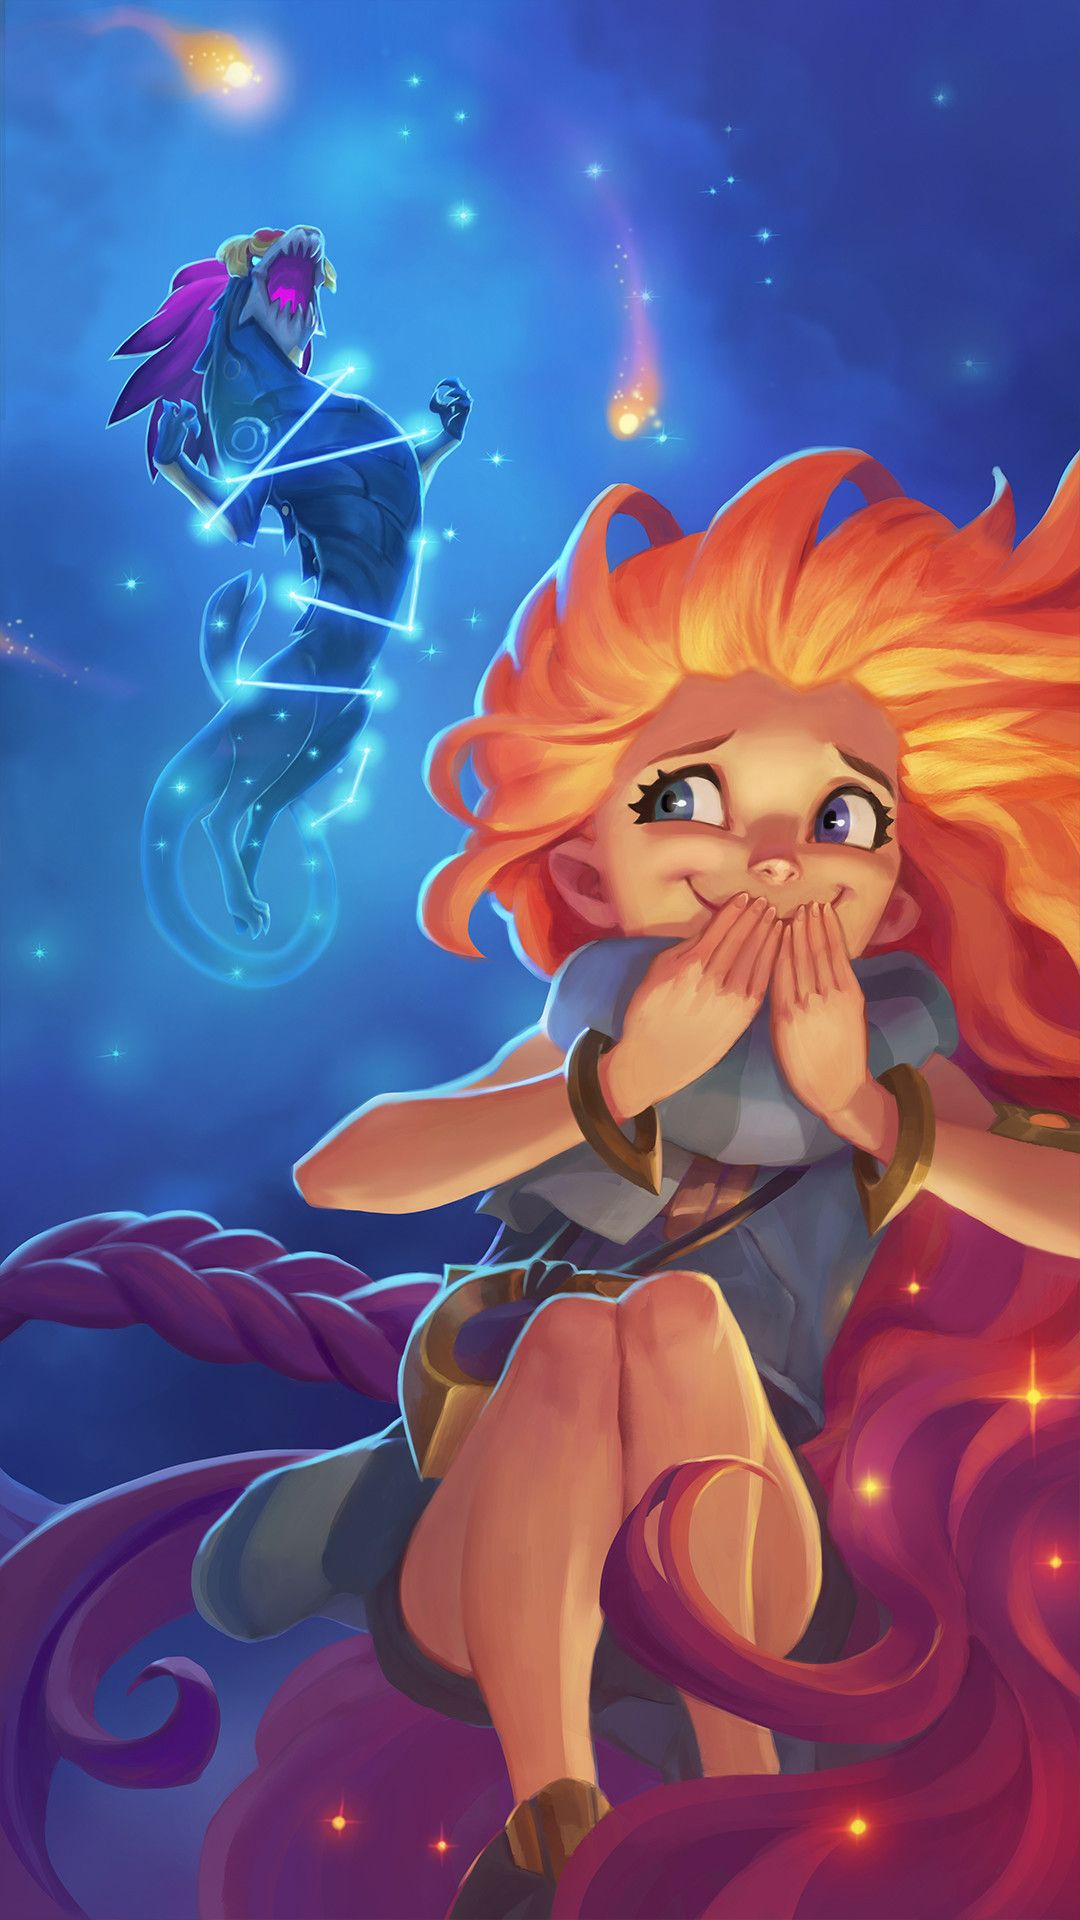 My Illustrations For The New League Of Legends Champion Zoe